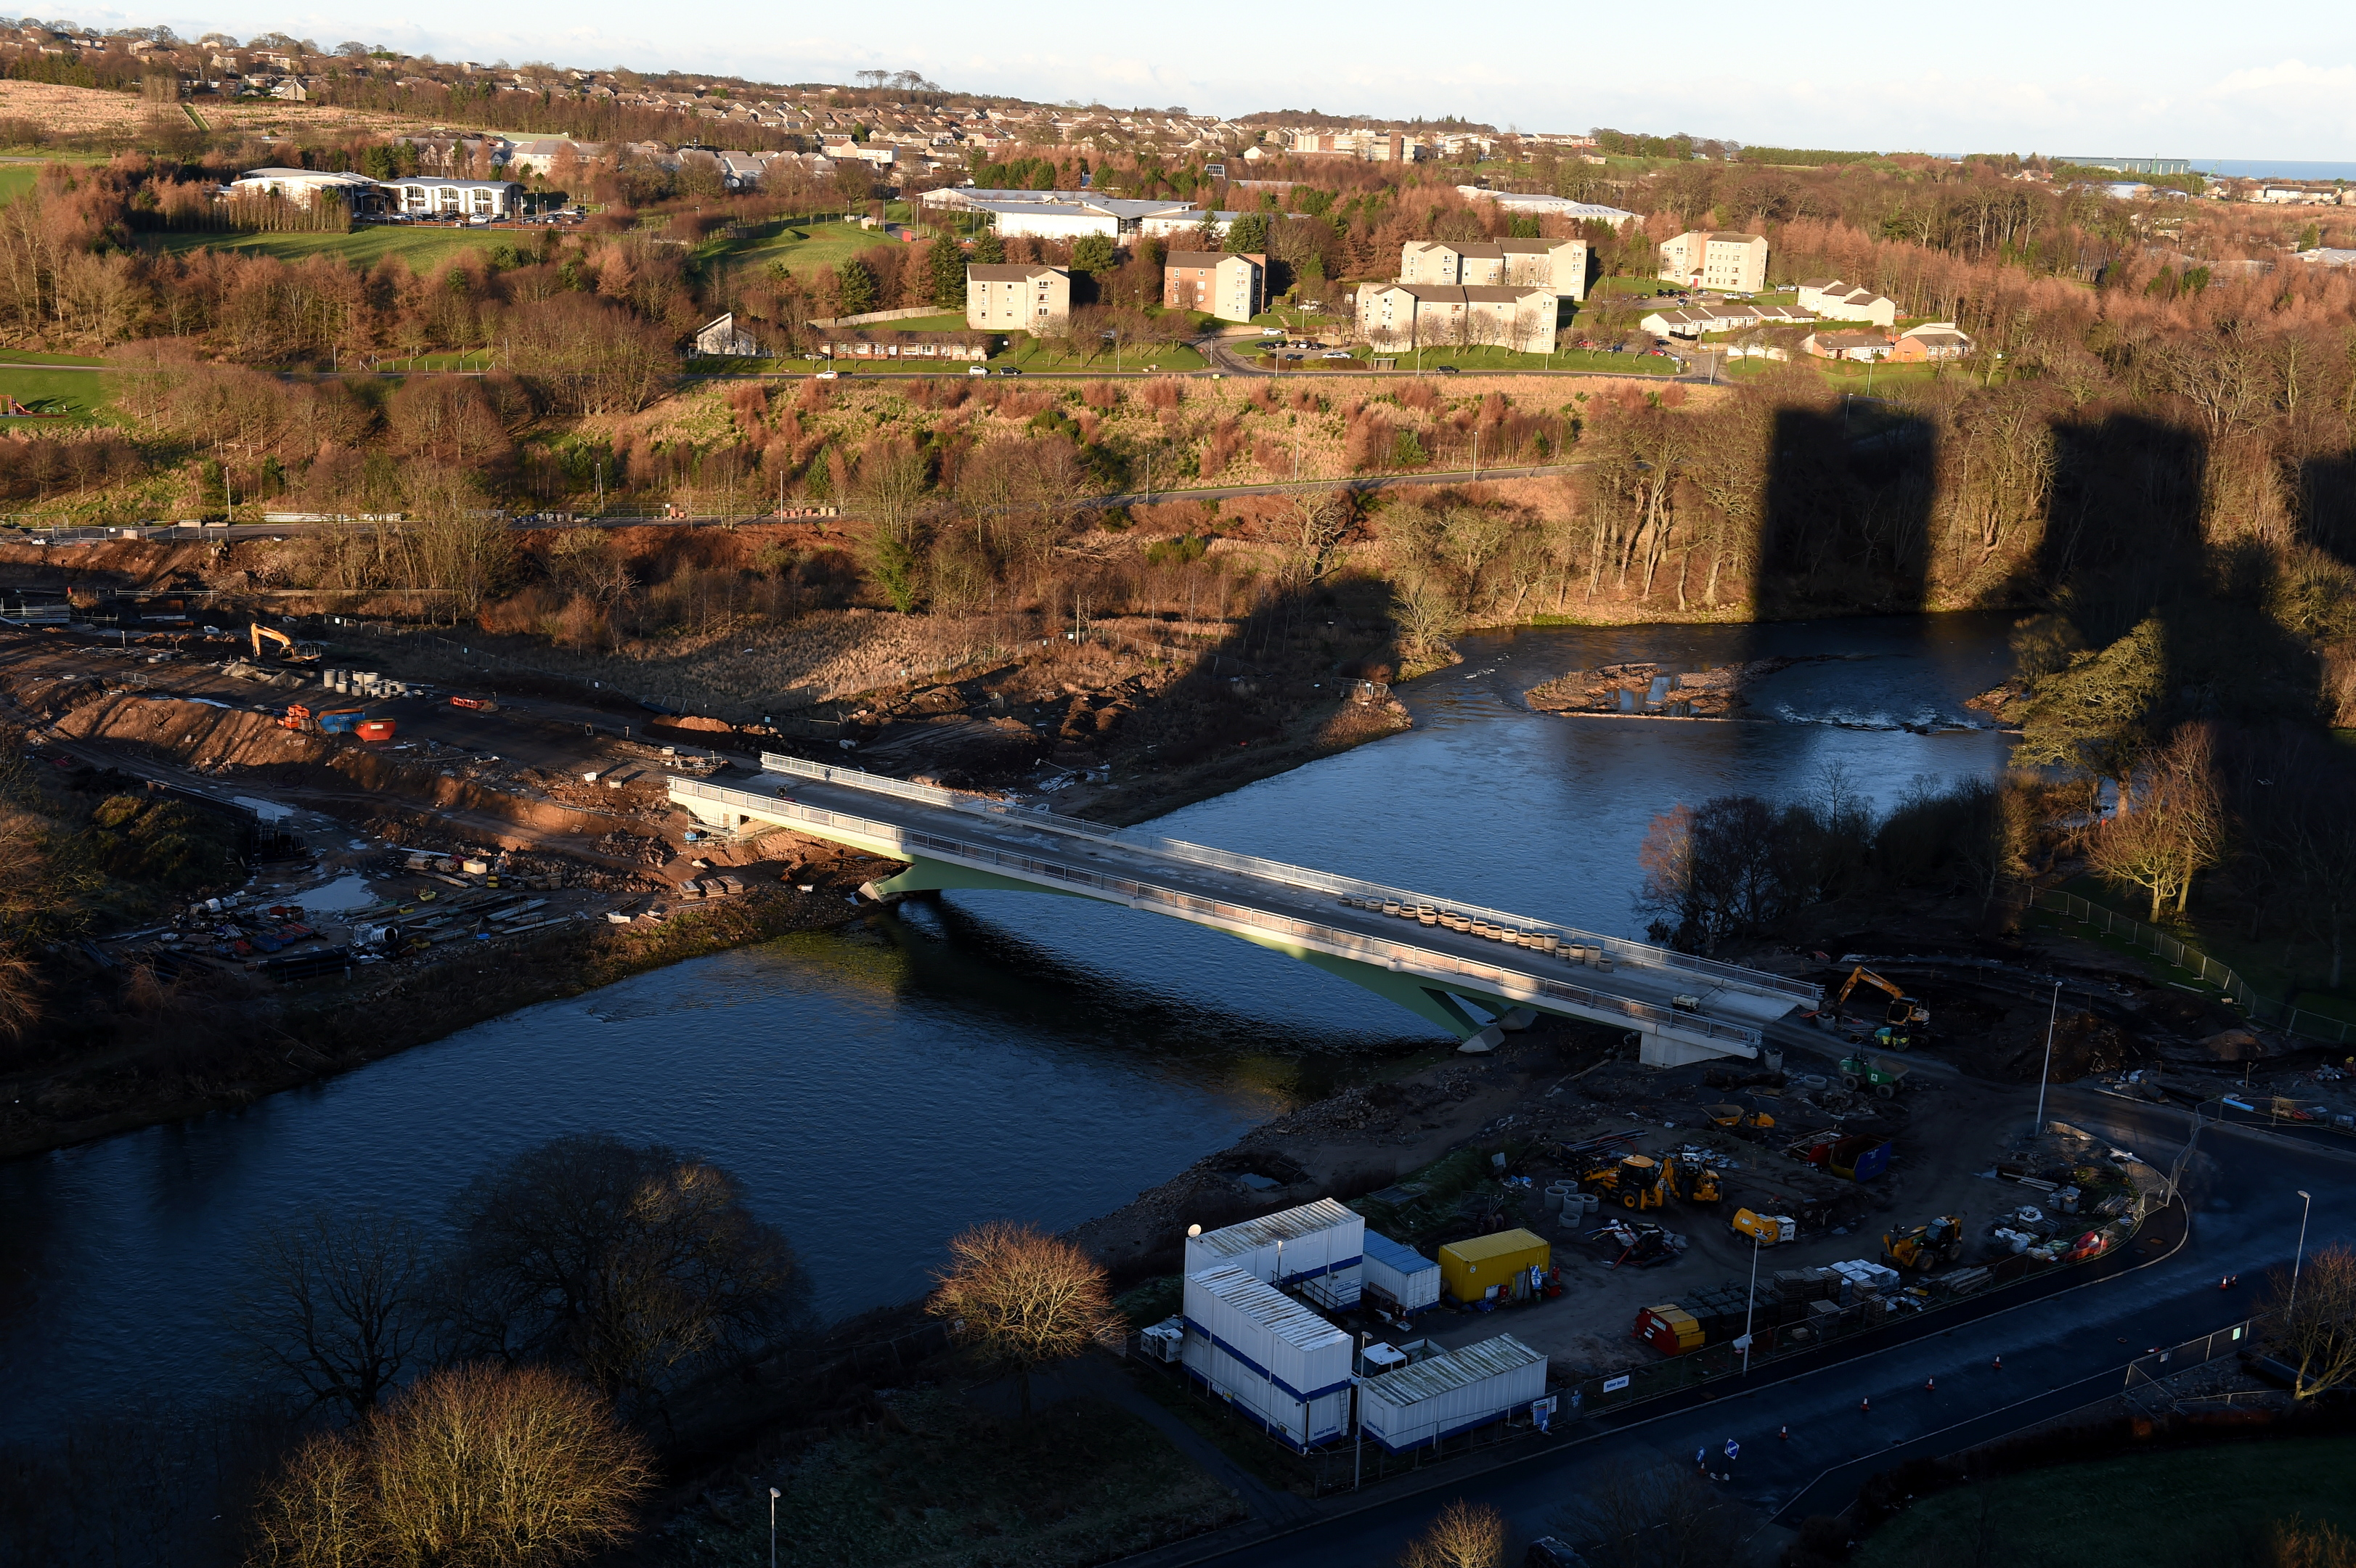 The new bridge will link Bridge of Don with Tillydrone.